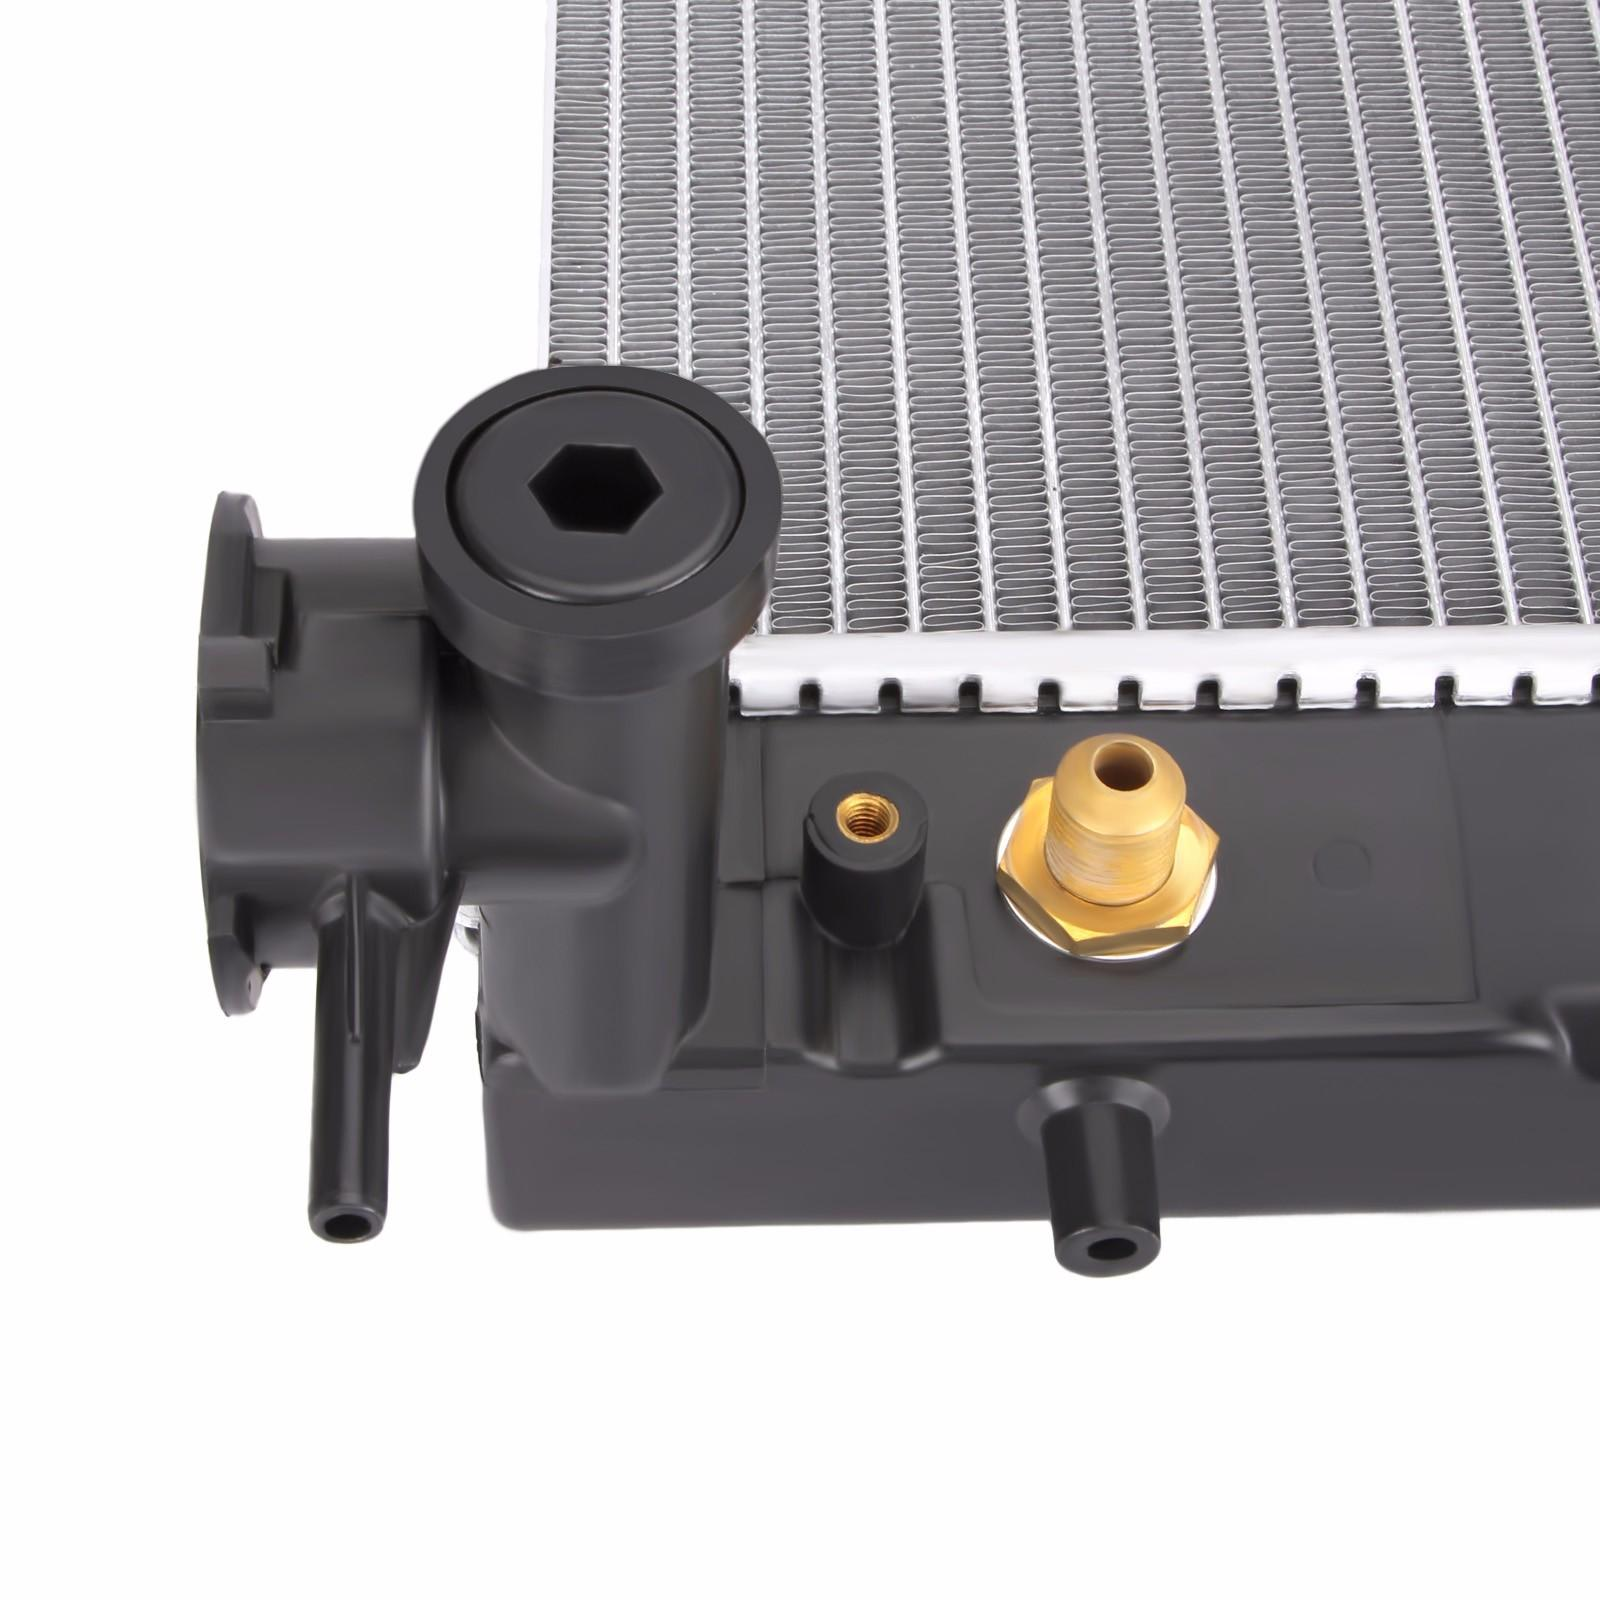 holden radiators for sale 0408 dual holden radiator manufacture